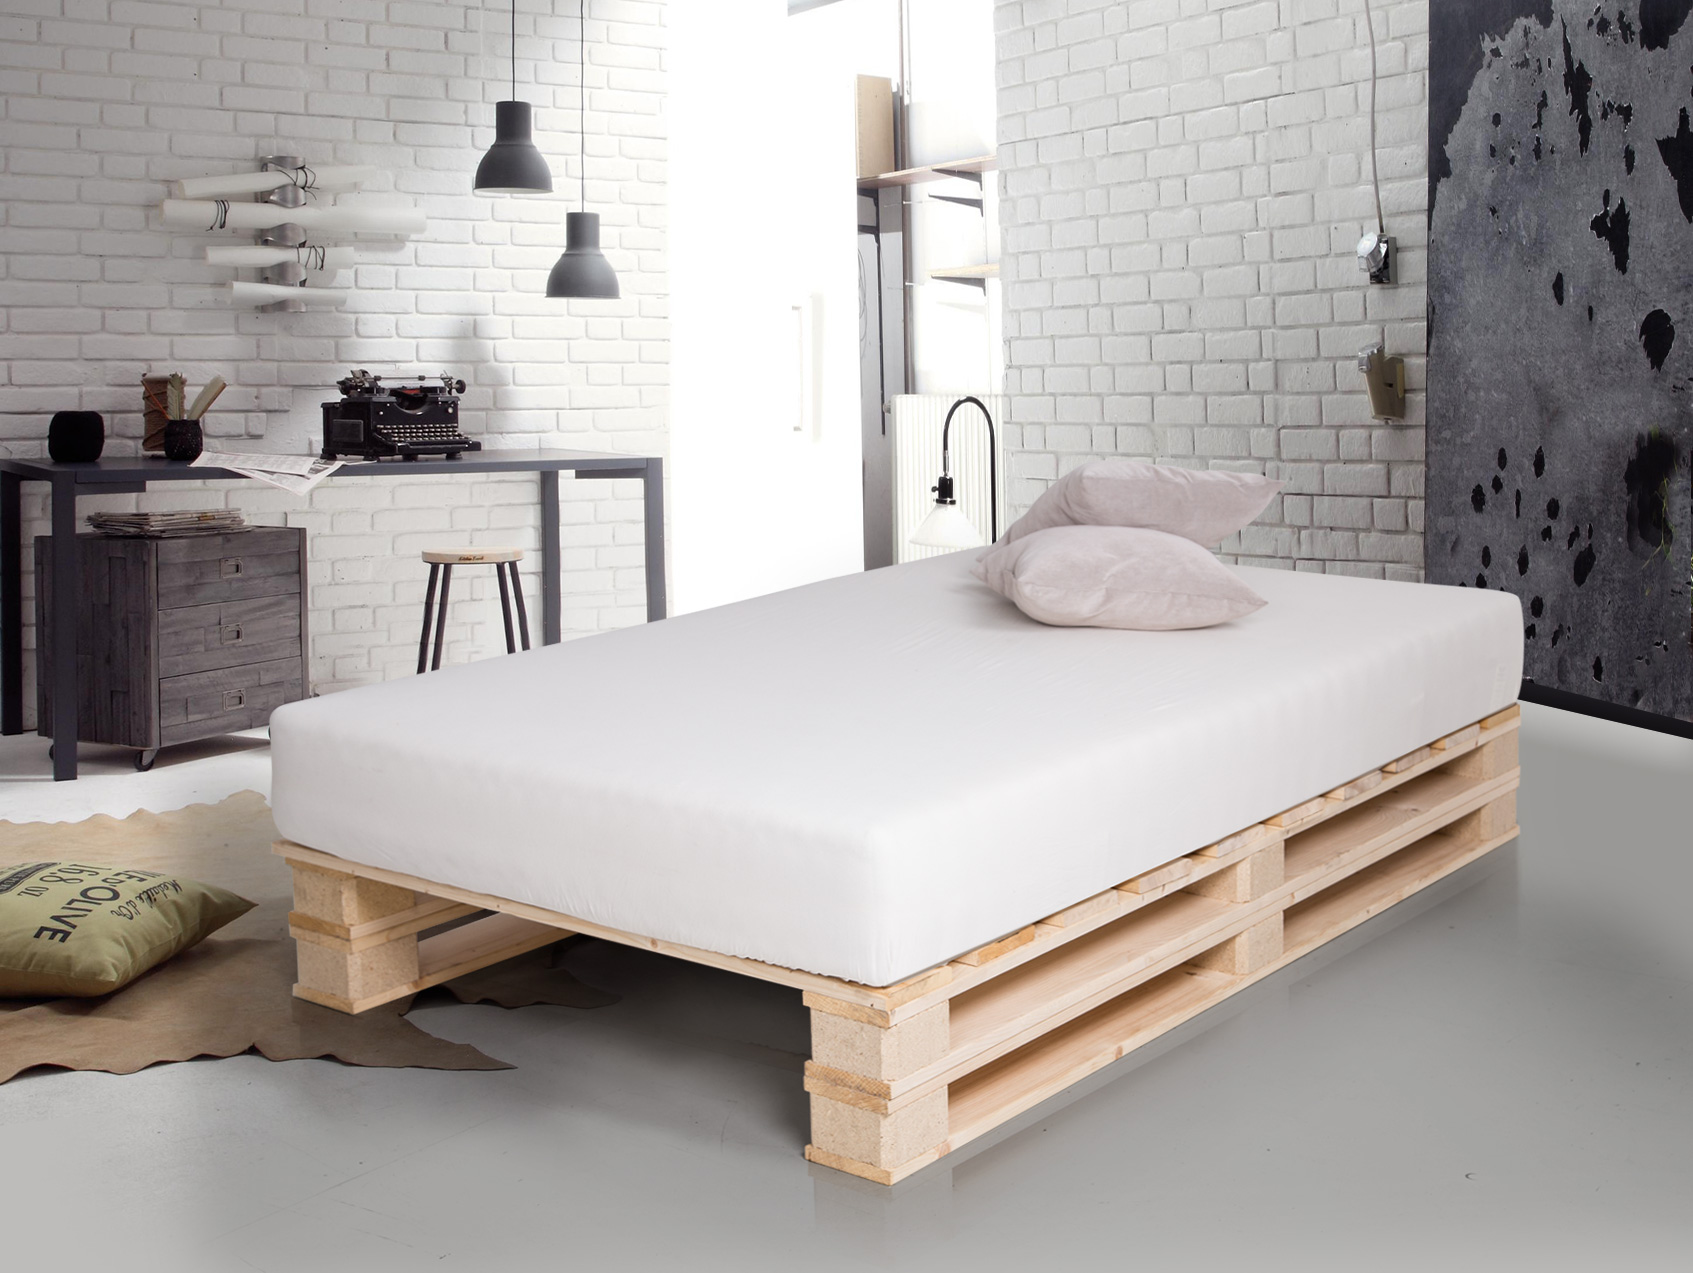 bett aus paletten mit lattenrost carprola for. Black Bedroom Furniture Sets. Home Design Ideas